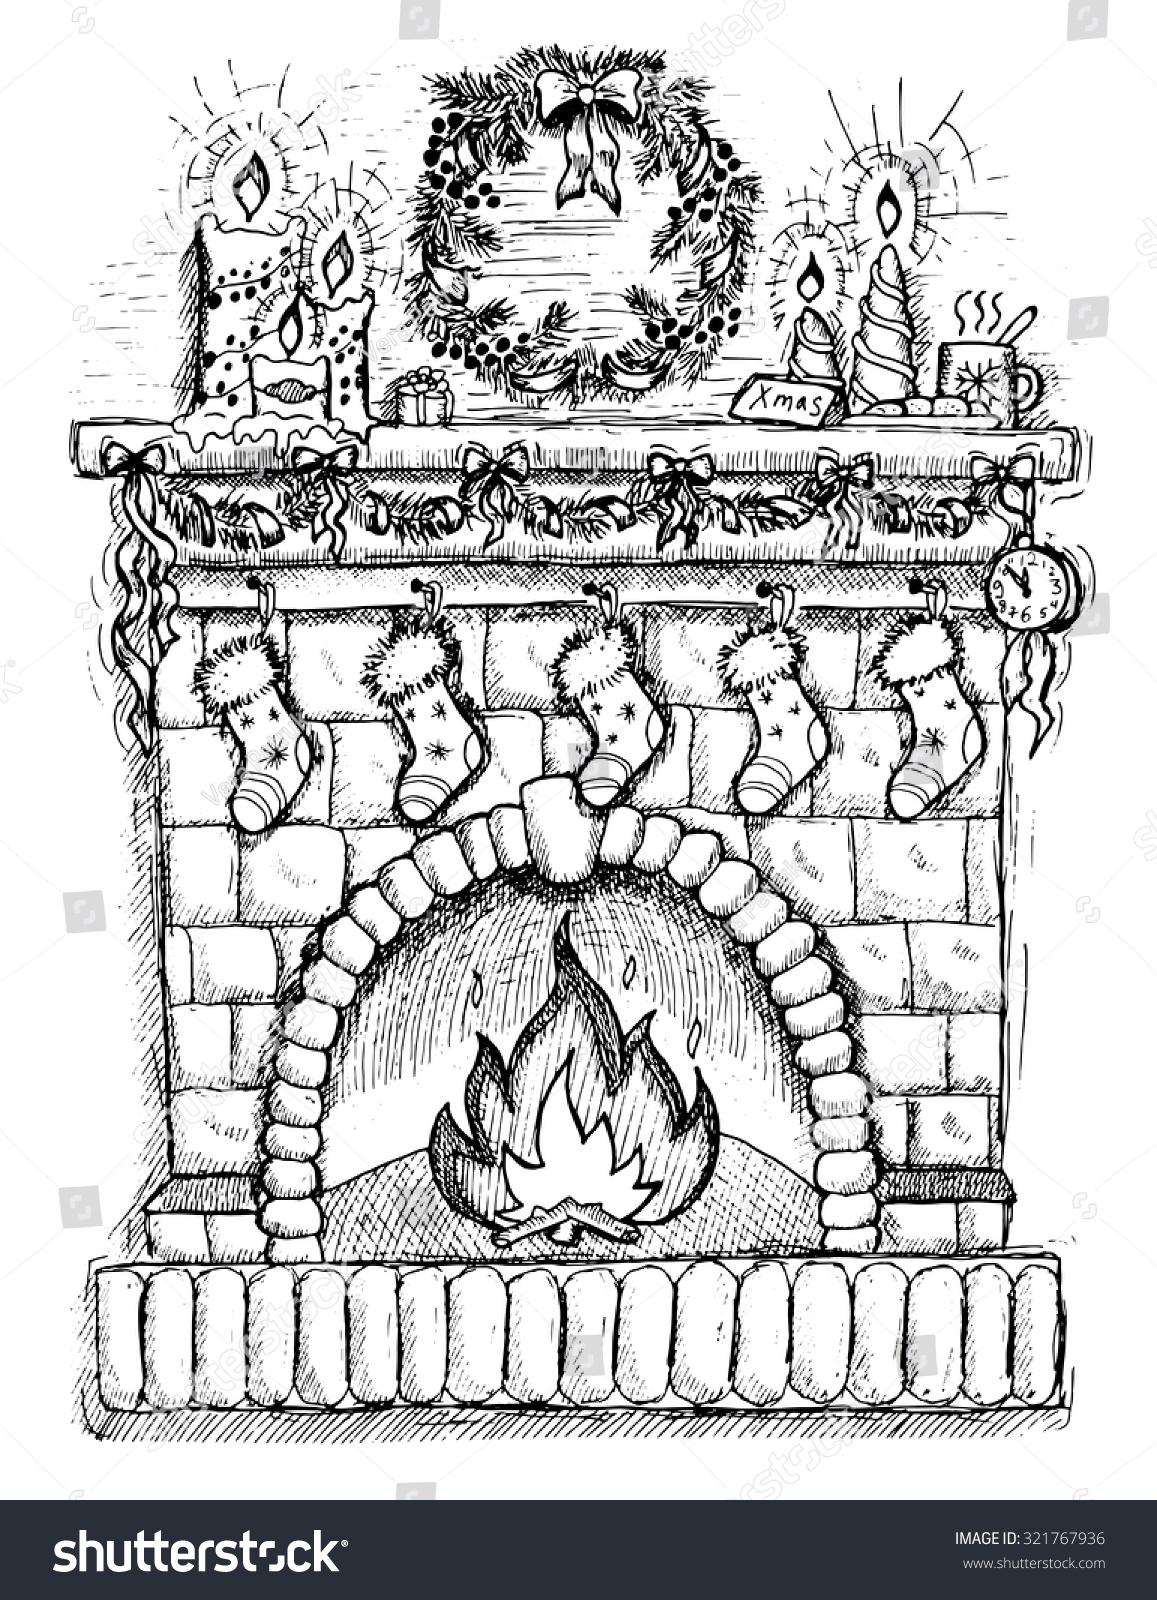 Illustration Fireplace Socks Christmas Decorations Hand